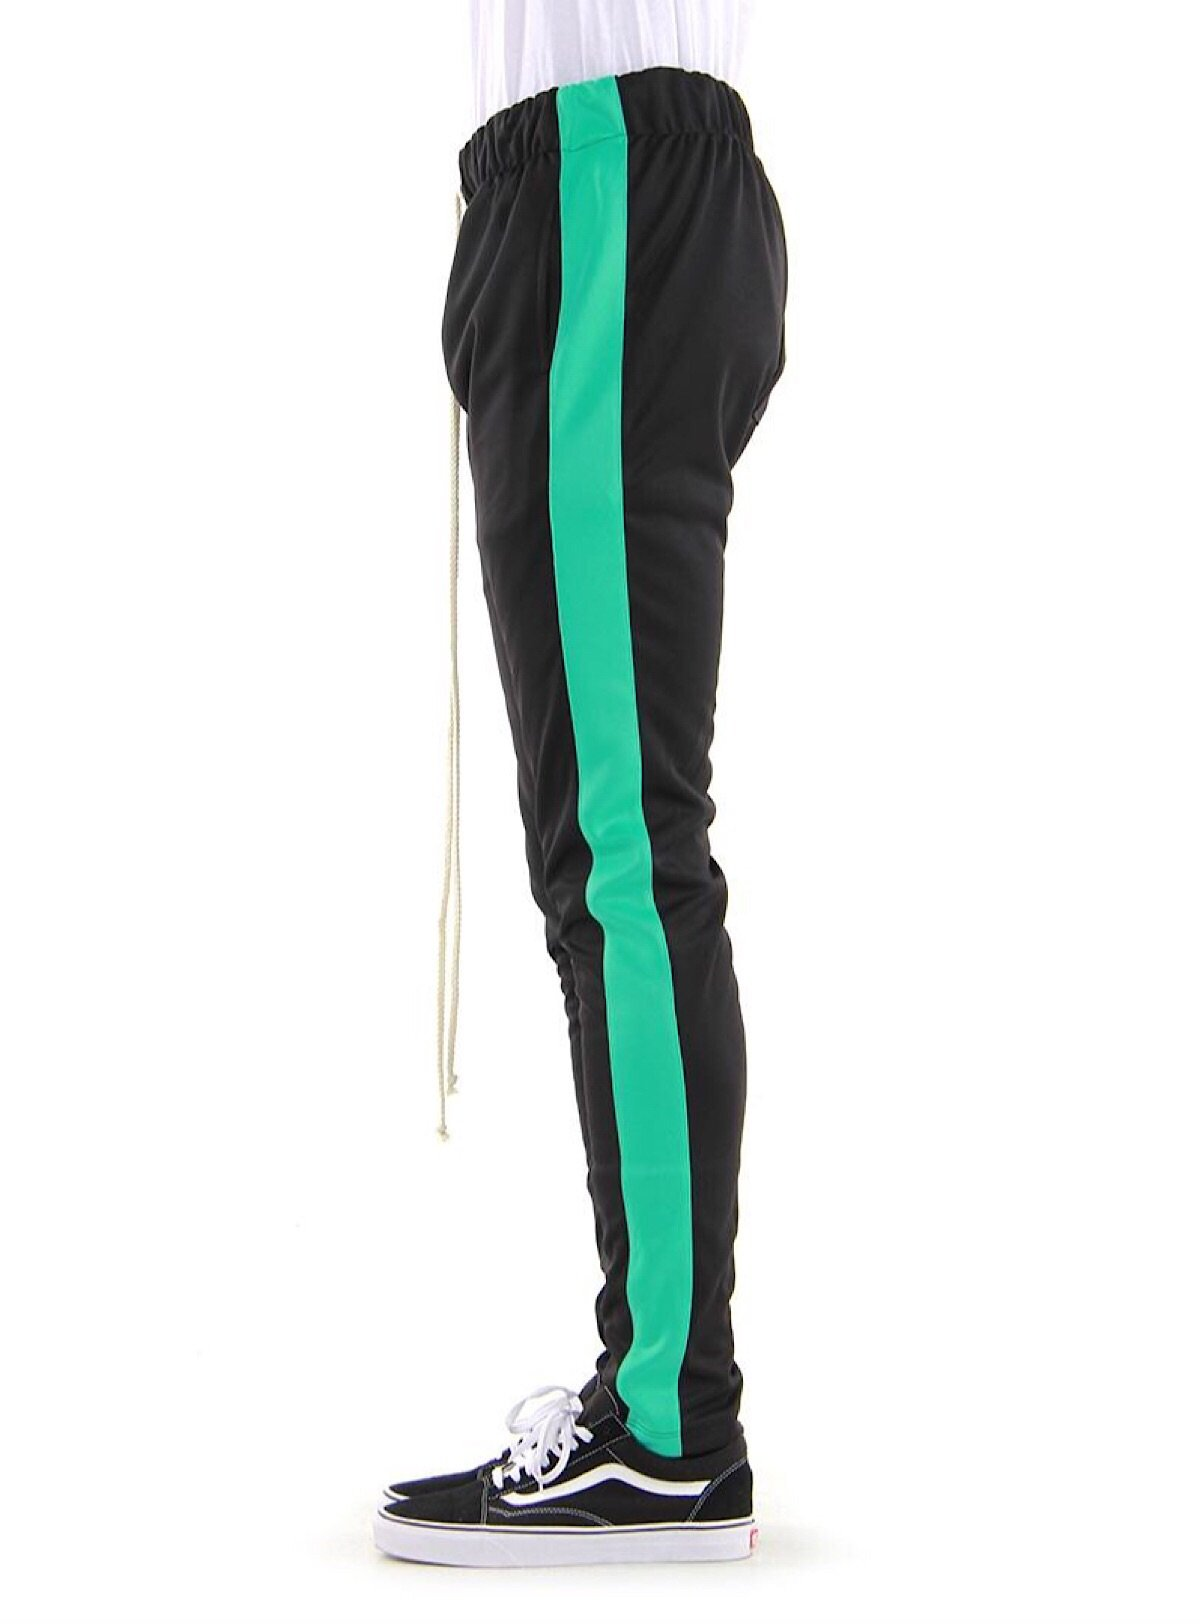 EPTM Track Pants - Black And Mint - EP9629